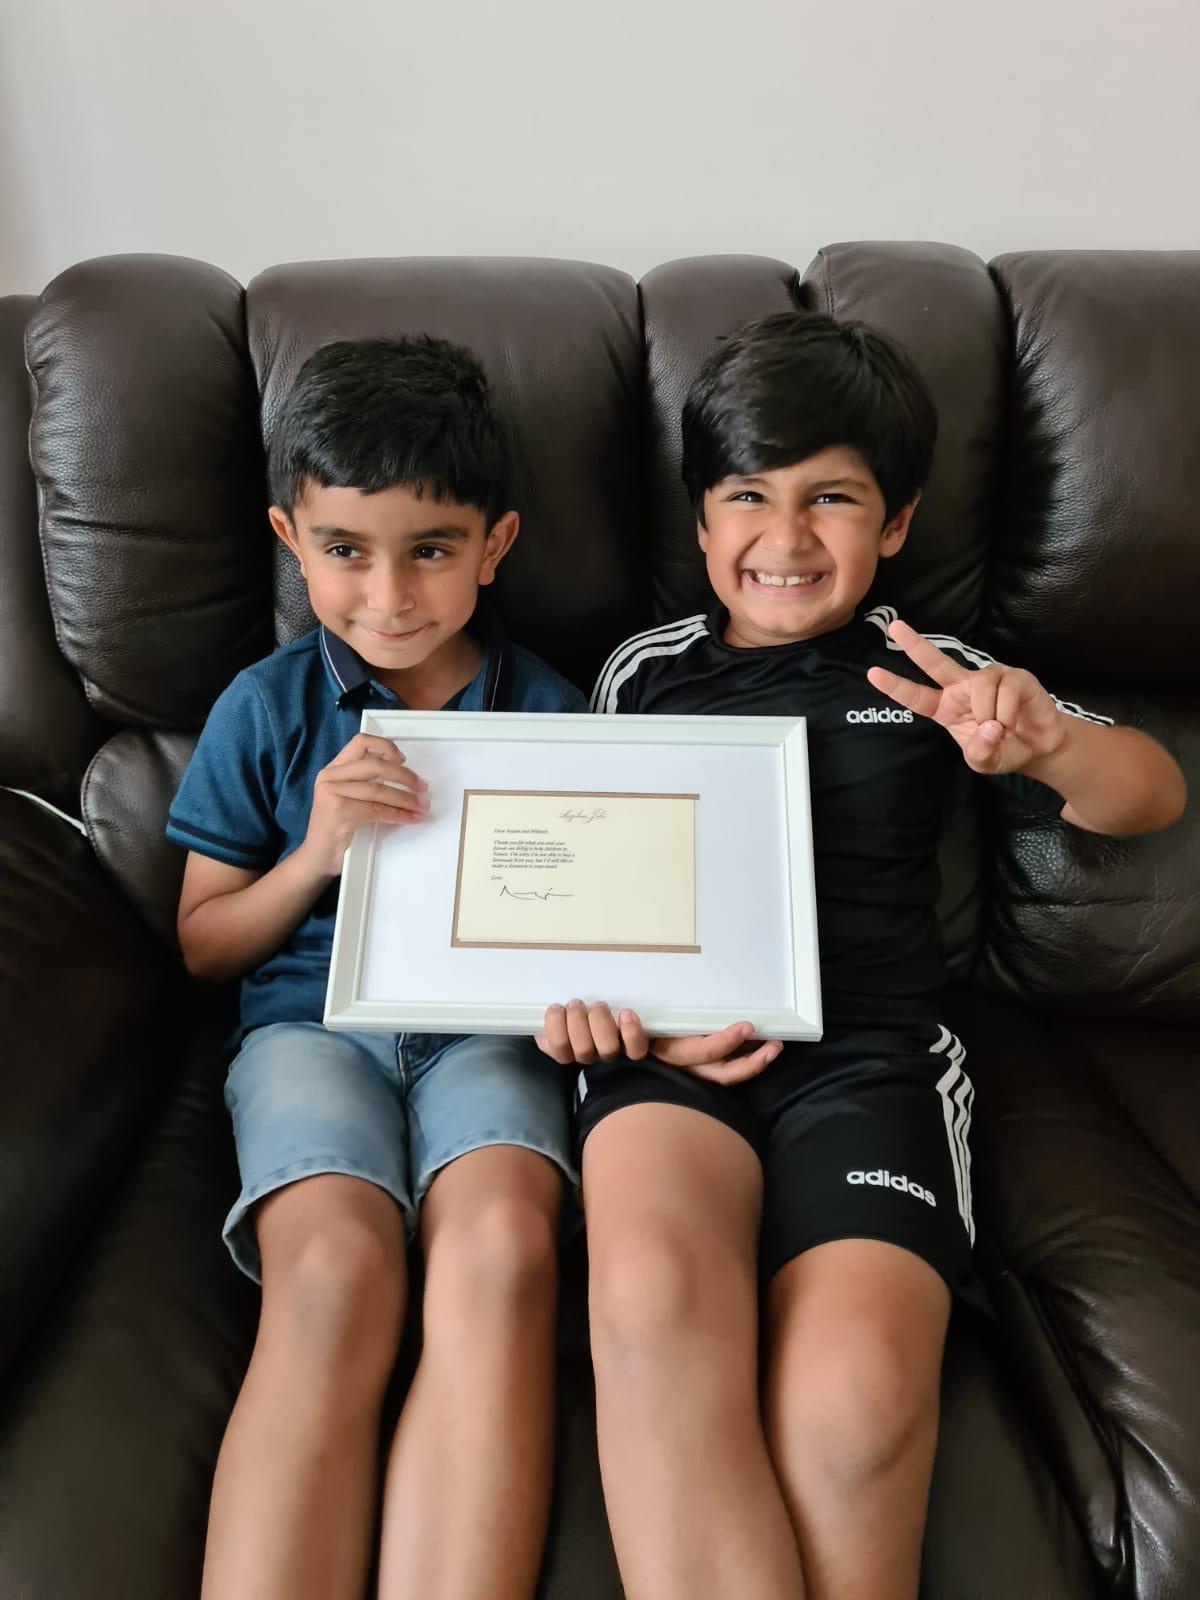 Mikaeel Ishaaq (left) and Ayaan Moosa have been raising money for causes with their lemonade